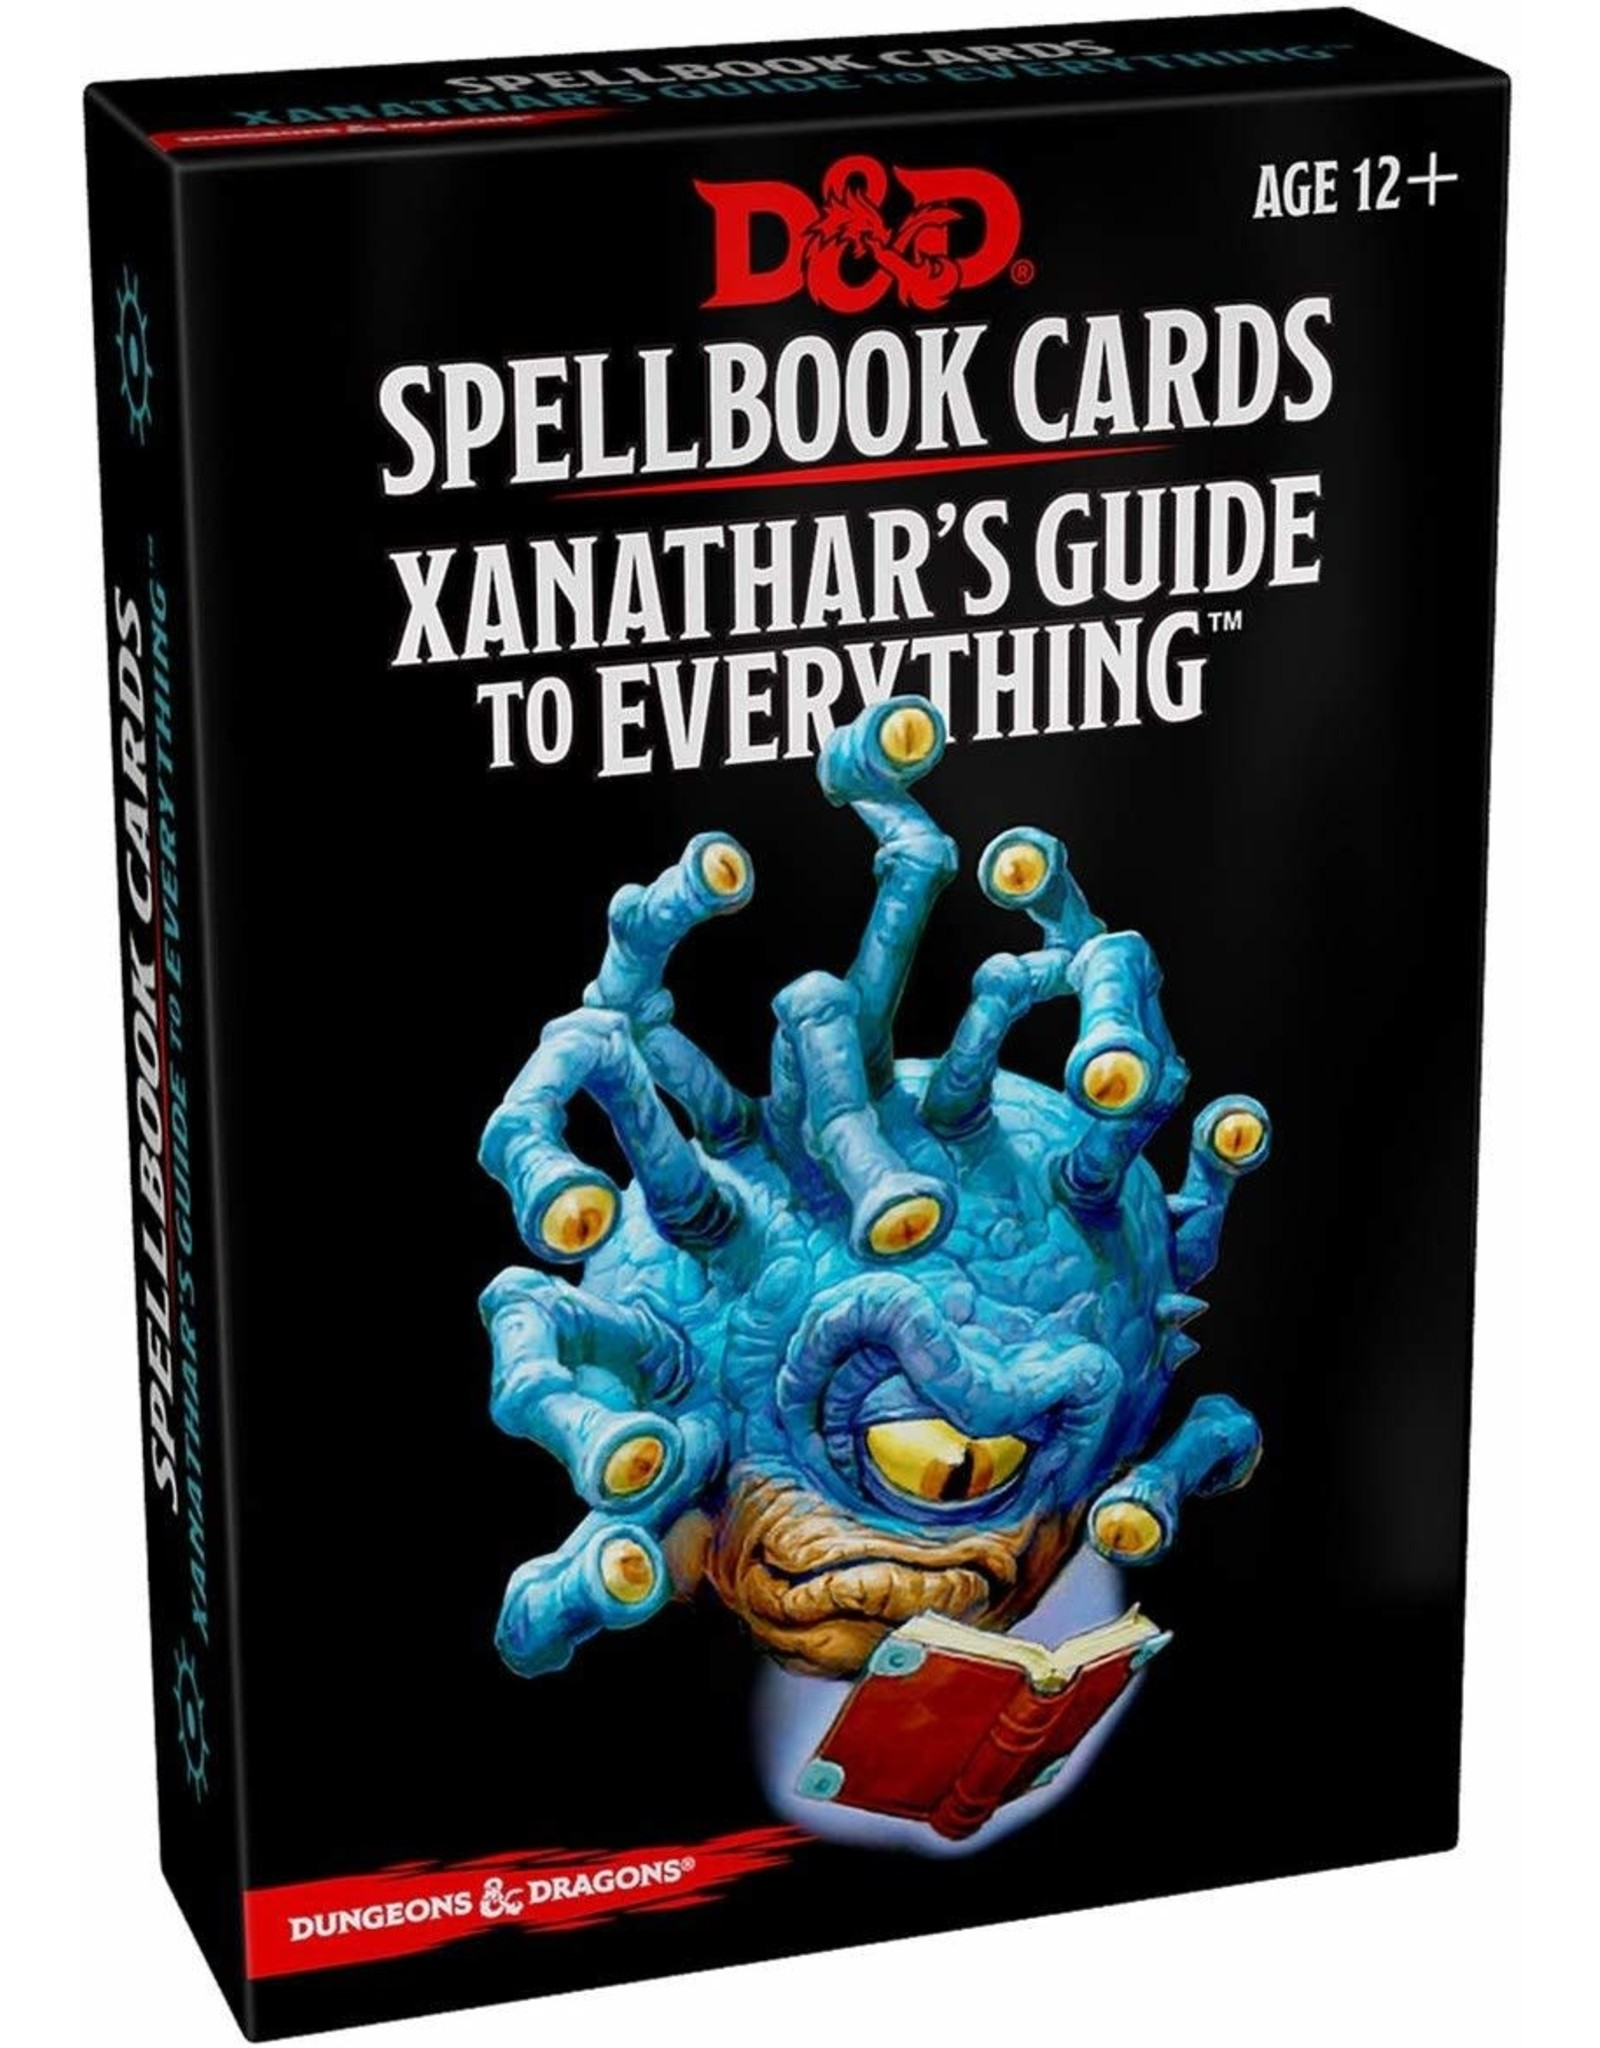 WIZARDS OF THE COAST D&D SPELLBOOK CARDS XANATHAR'S GUIDE